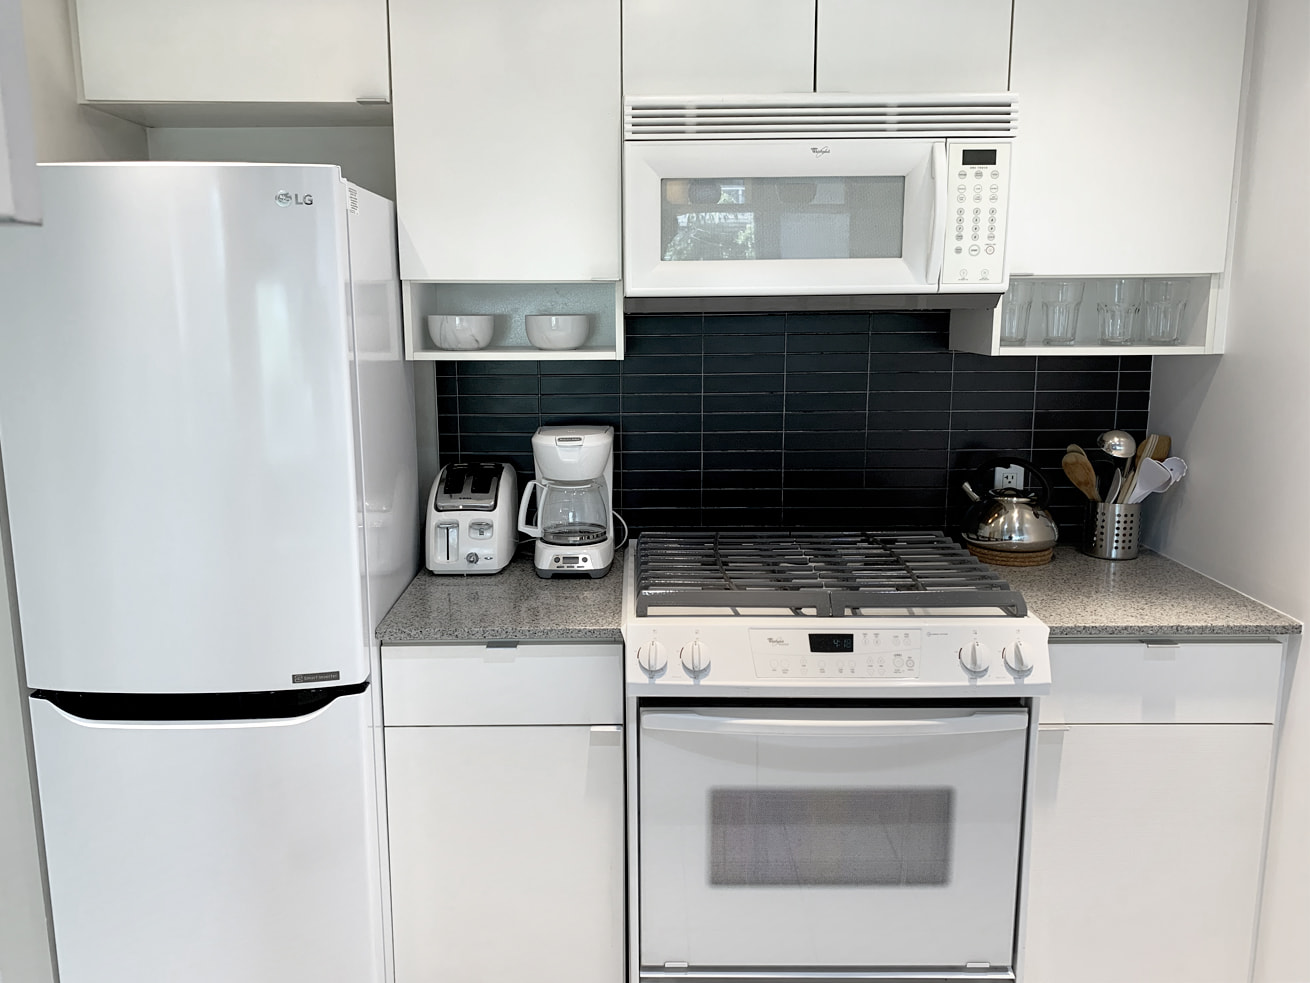 Vancouver downtown apartments max one bedroom den kitchen